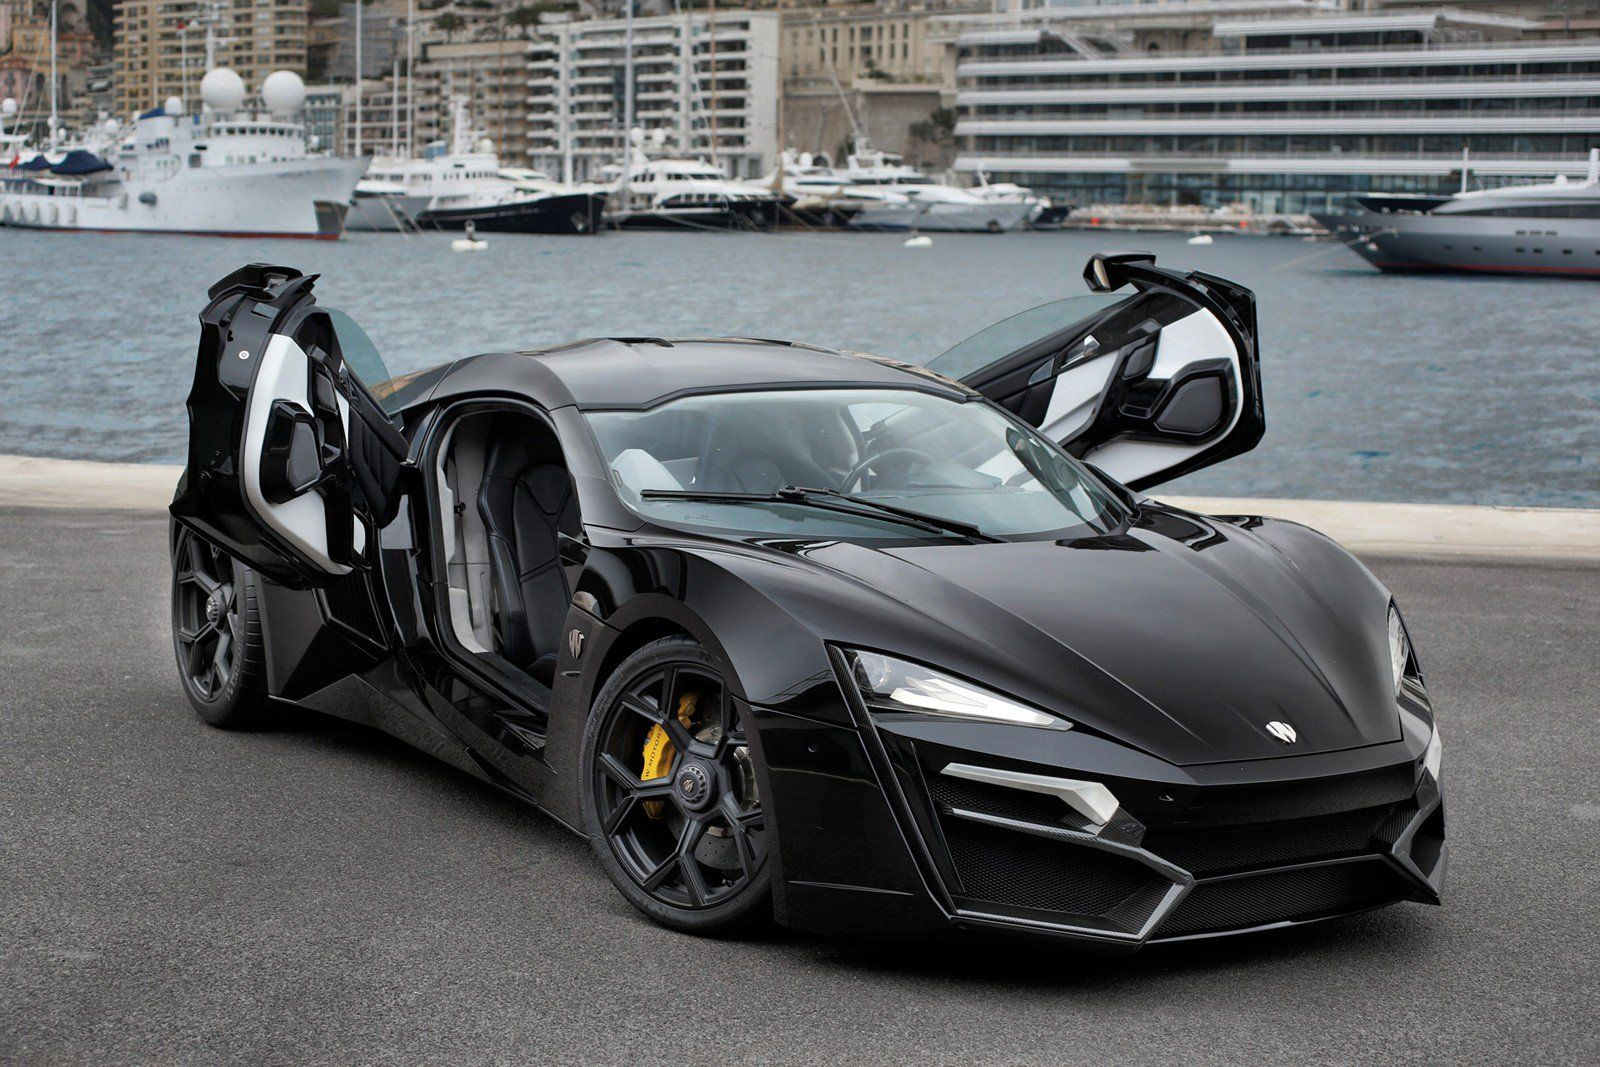 Top 12 Ultimate Expensive Cars In The World Sieu Xe Xe Thể Thao Xe Hơi độc